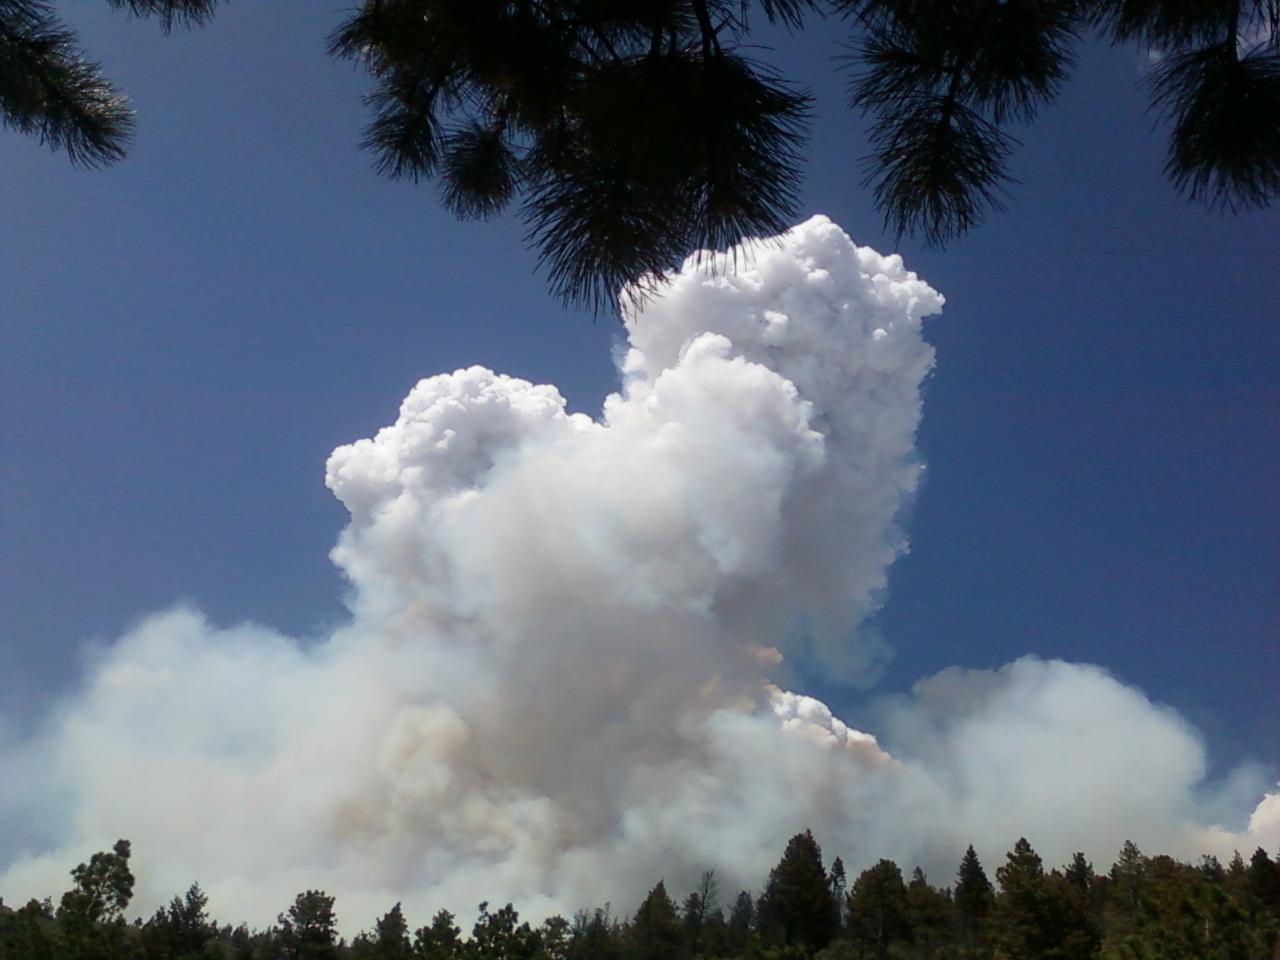 Smoke column of the Waldo Canyon Fire near Colorado Springs, Colo. captured by an AmeriCorps NCCC member serving on a wildland fire fighter crew. (CNCS photo, courtesy Stephen Packard)